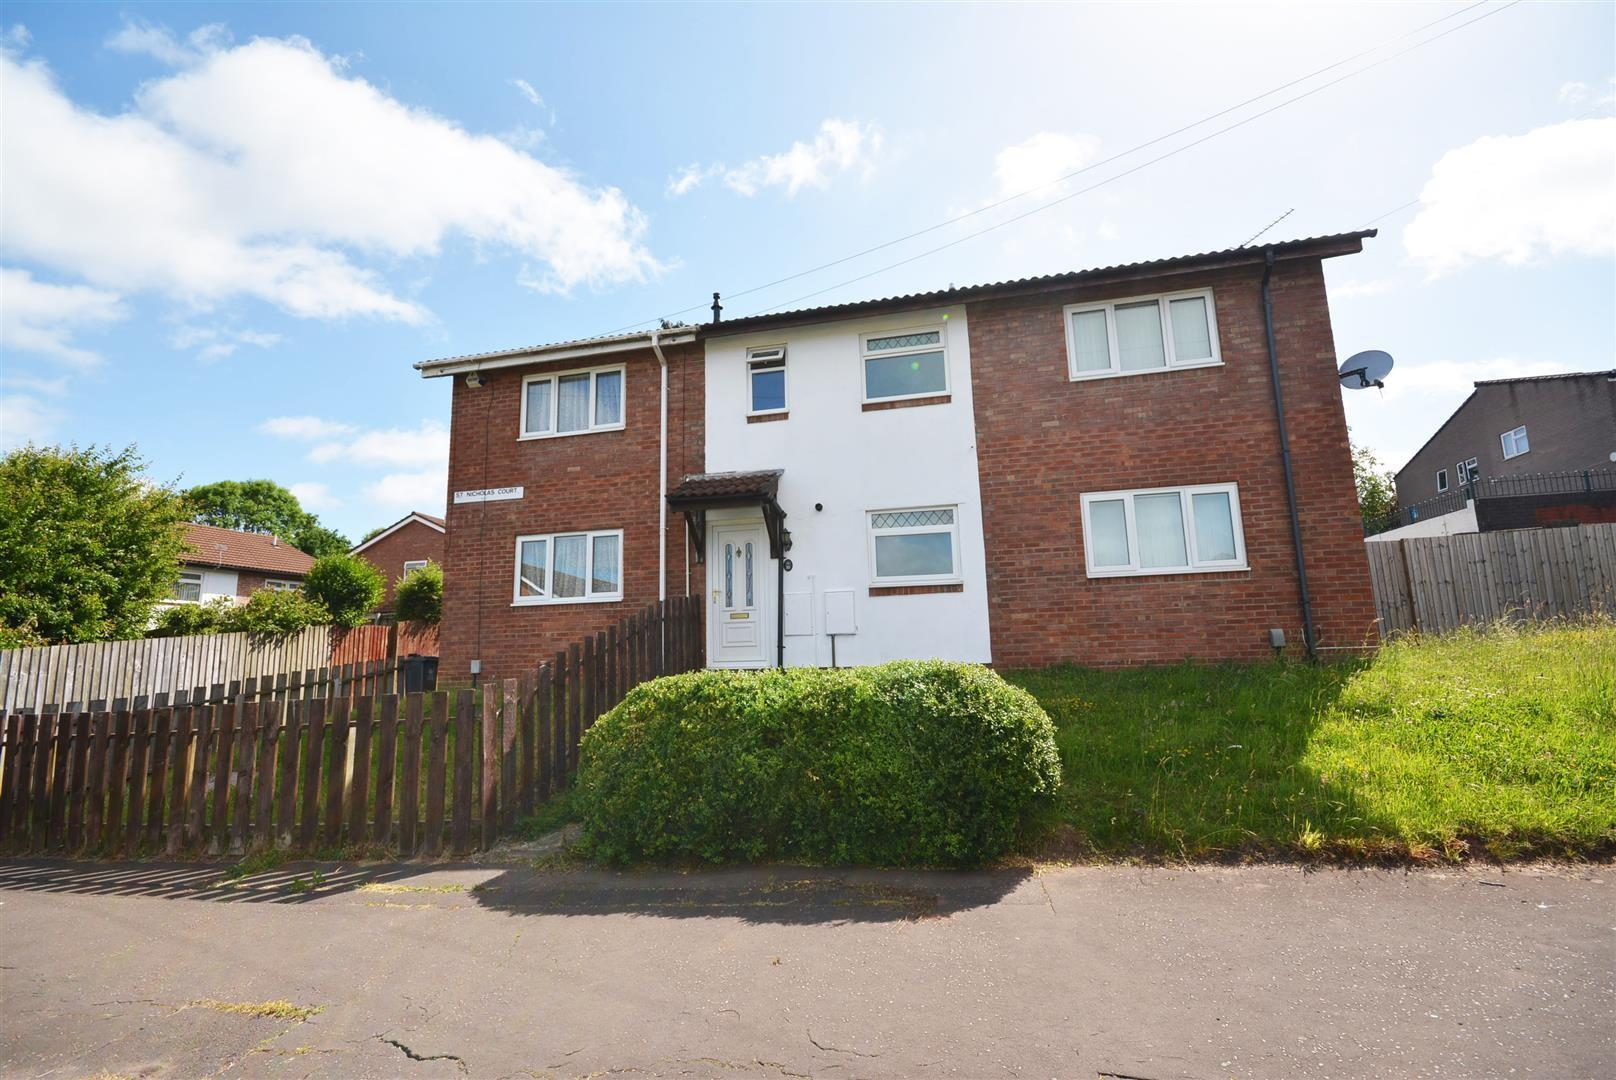 2 bed terraced house for sale in St Nicholas Court, Cardiff, CF23